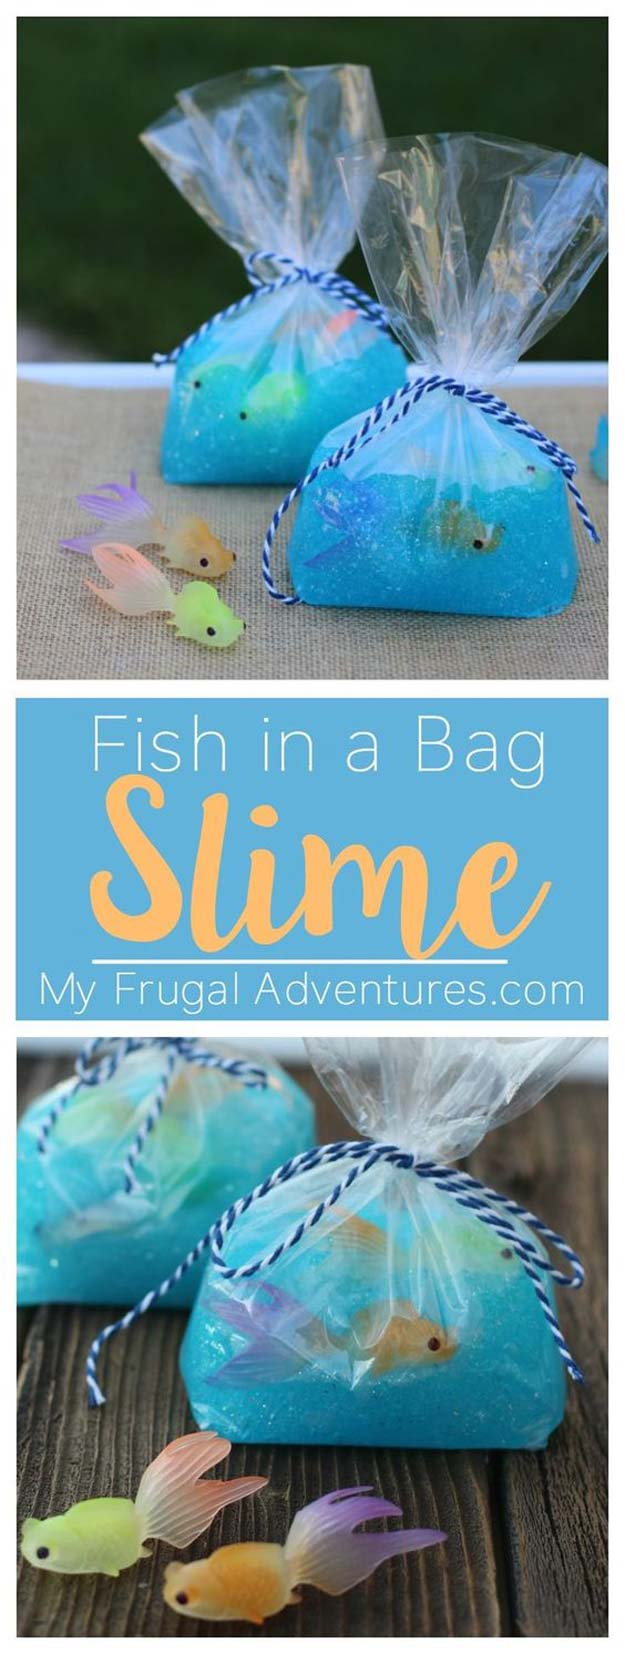 Fish In A Bag Slime.